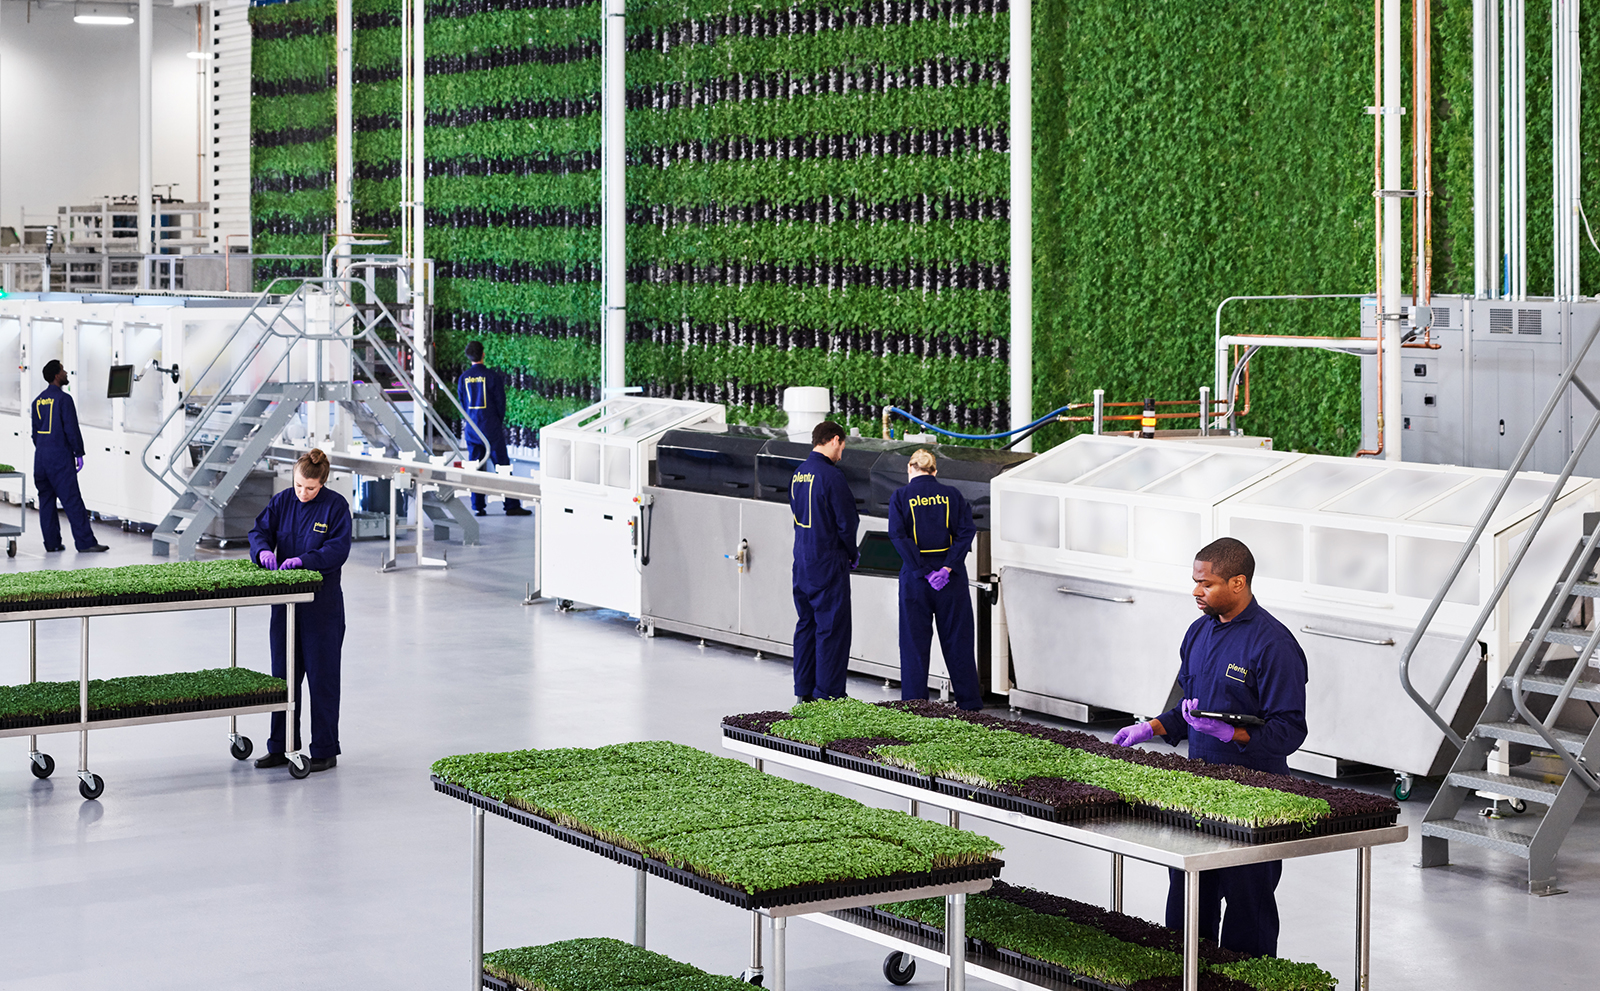 A giant, indoor vertical farm aims to bring jobs and fresh produce to Compton